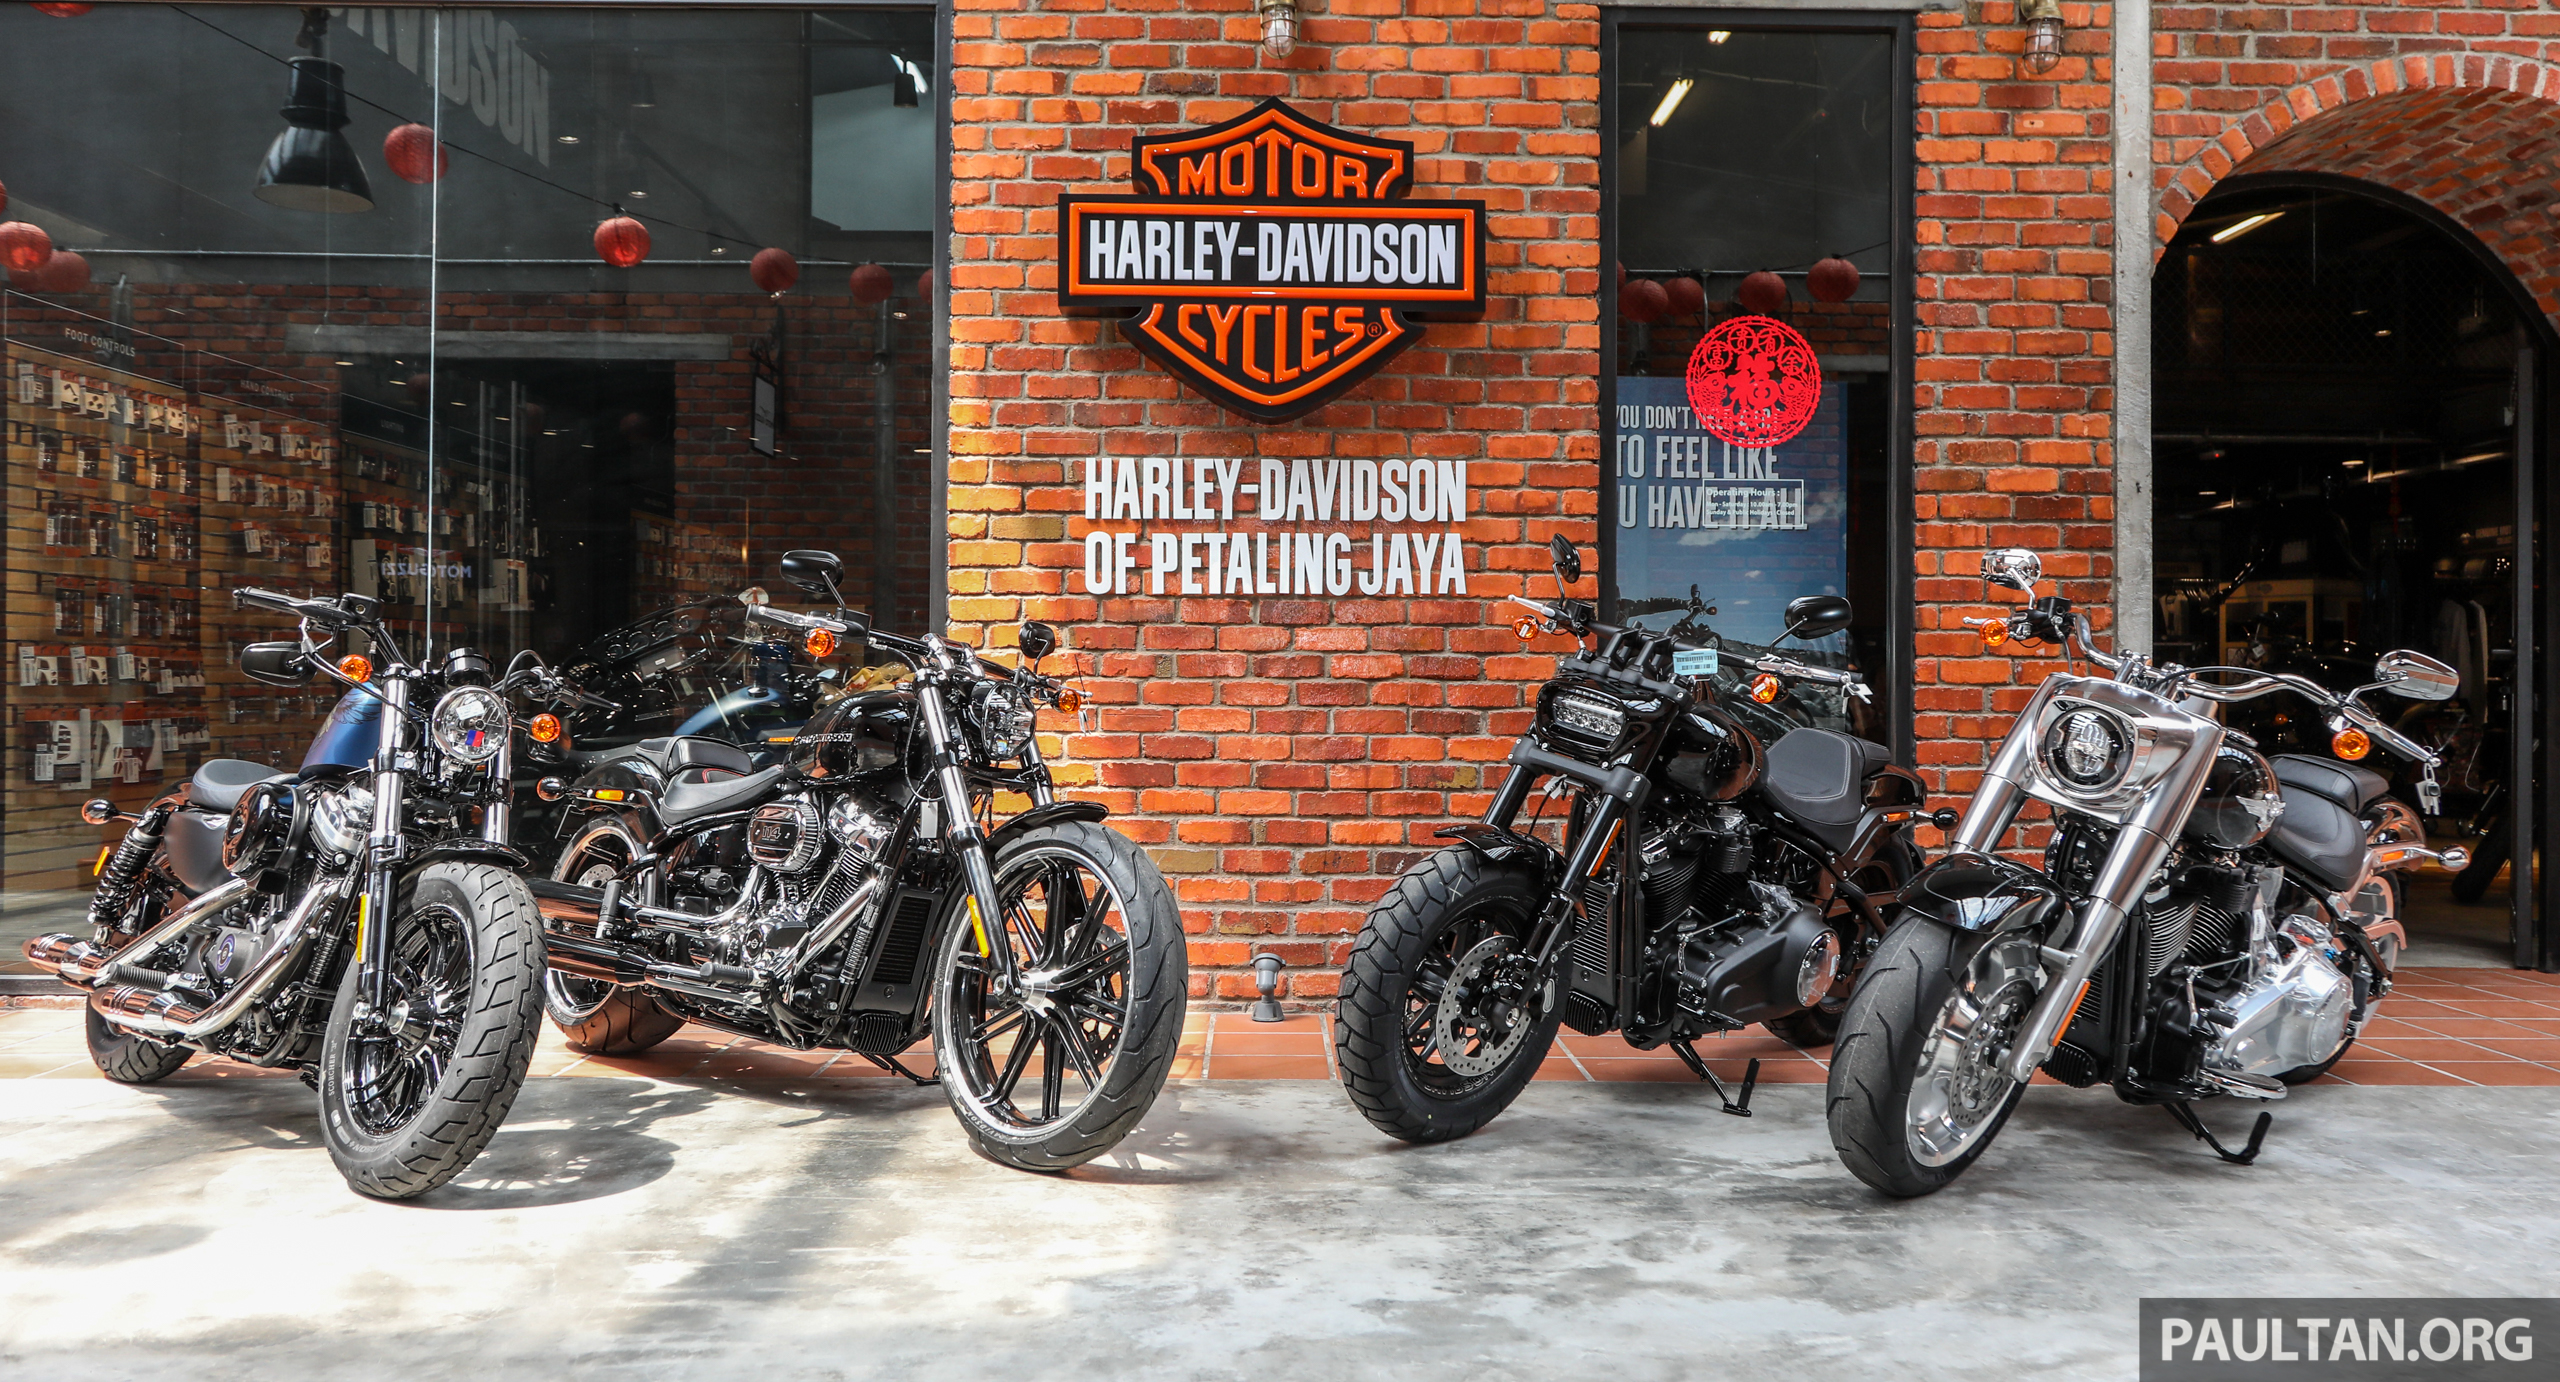 2018 Harley-Davidson Malaysia prices - from RM56k